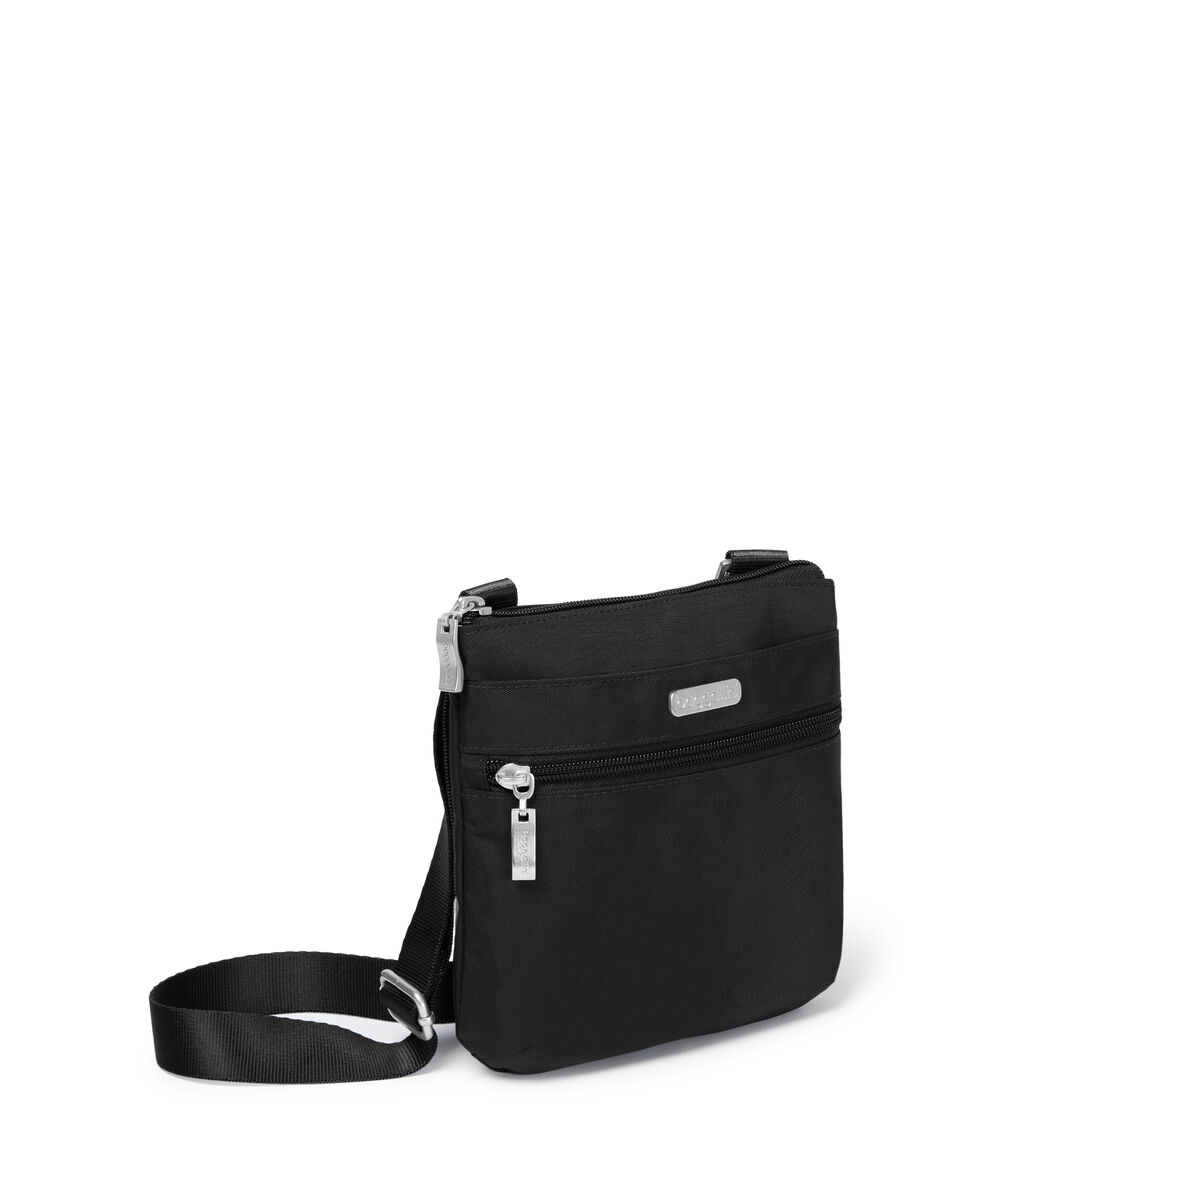 rfid small zip crossbody bag